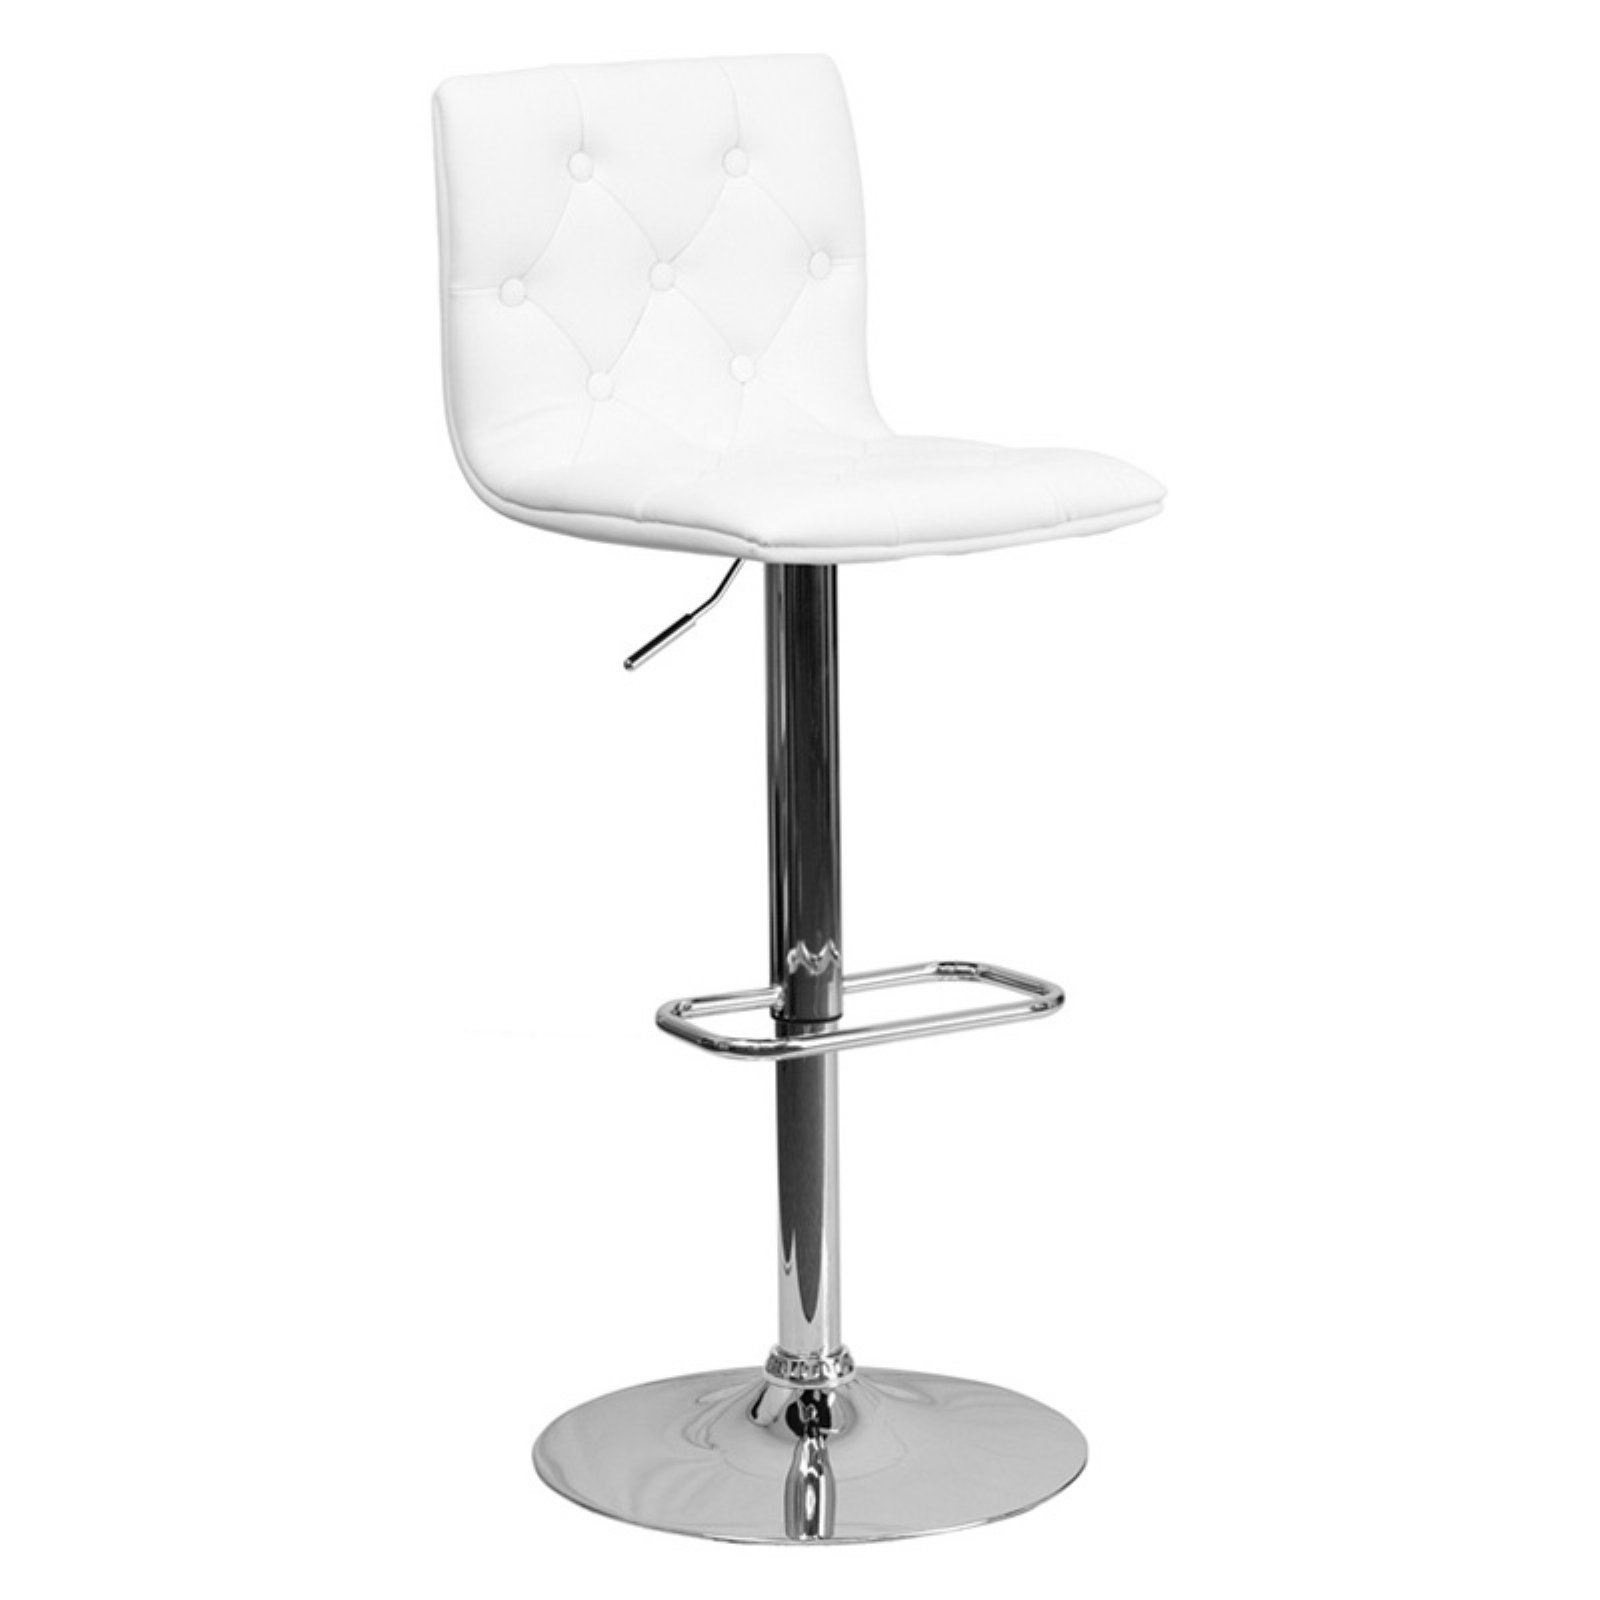 Admirable Flash Furniture Contemporary Tufted Vinyl Adjustable Height Barstool With Chrome Base Multiple Colors Pdpeps Interior Chair Design Pdpepsorg